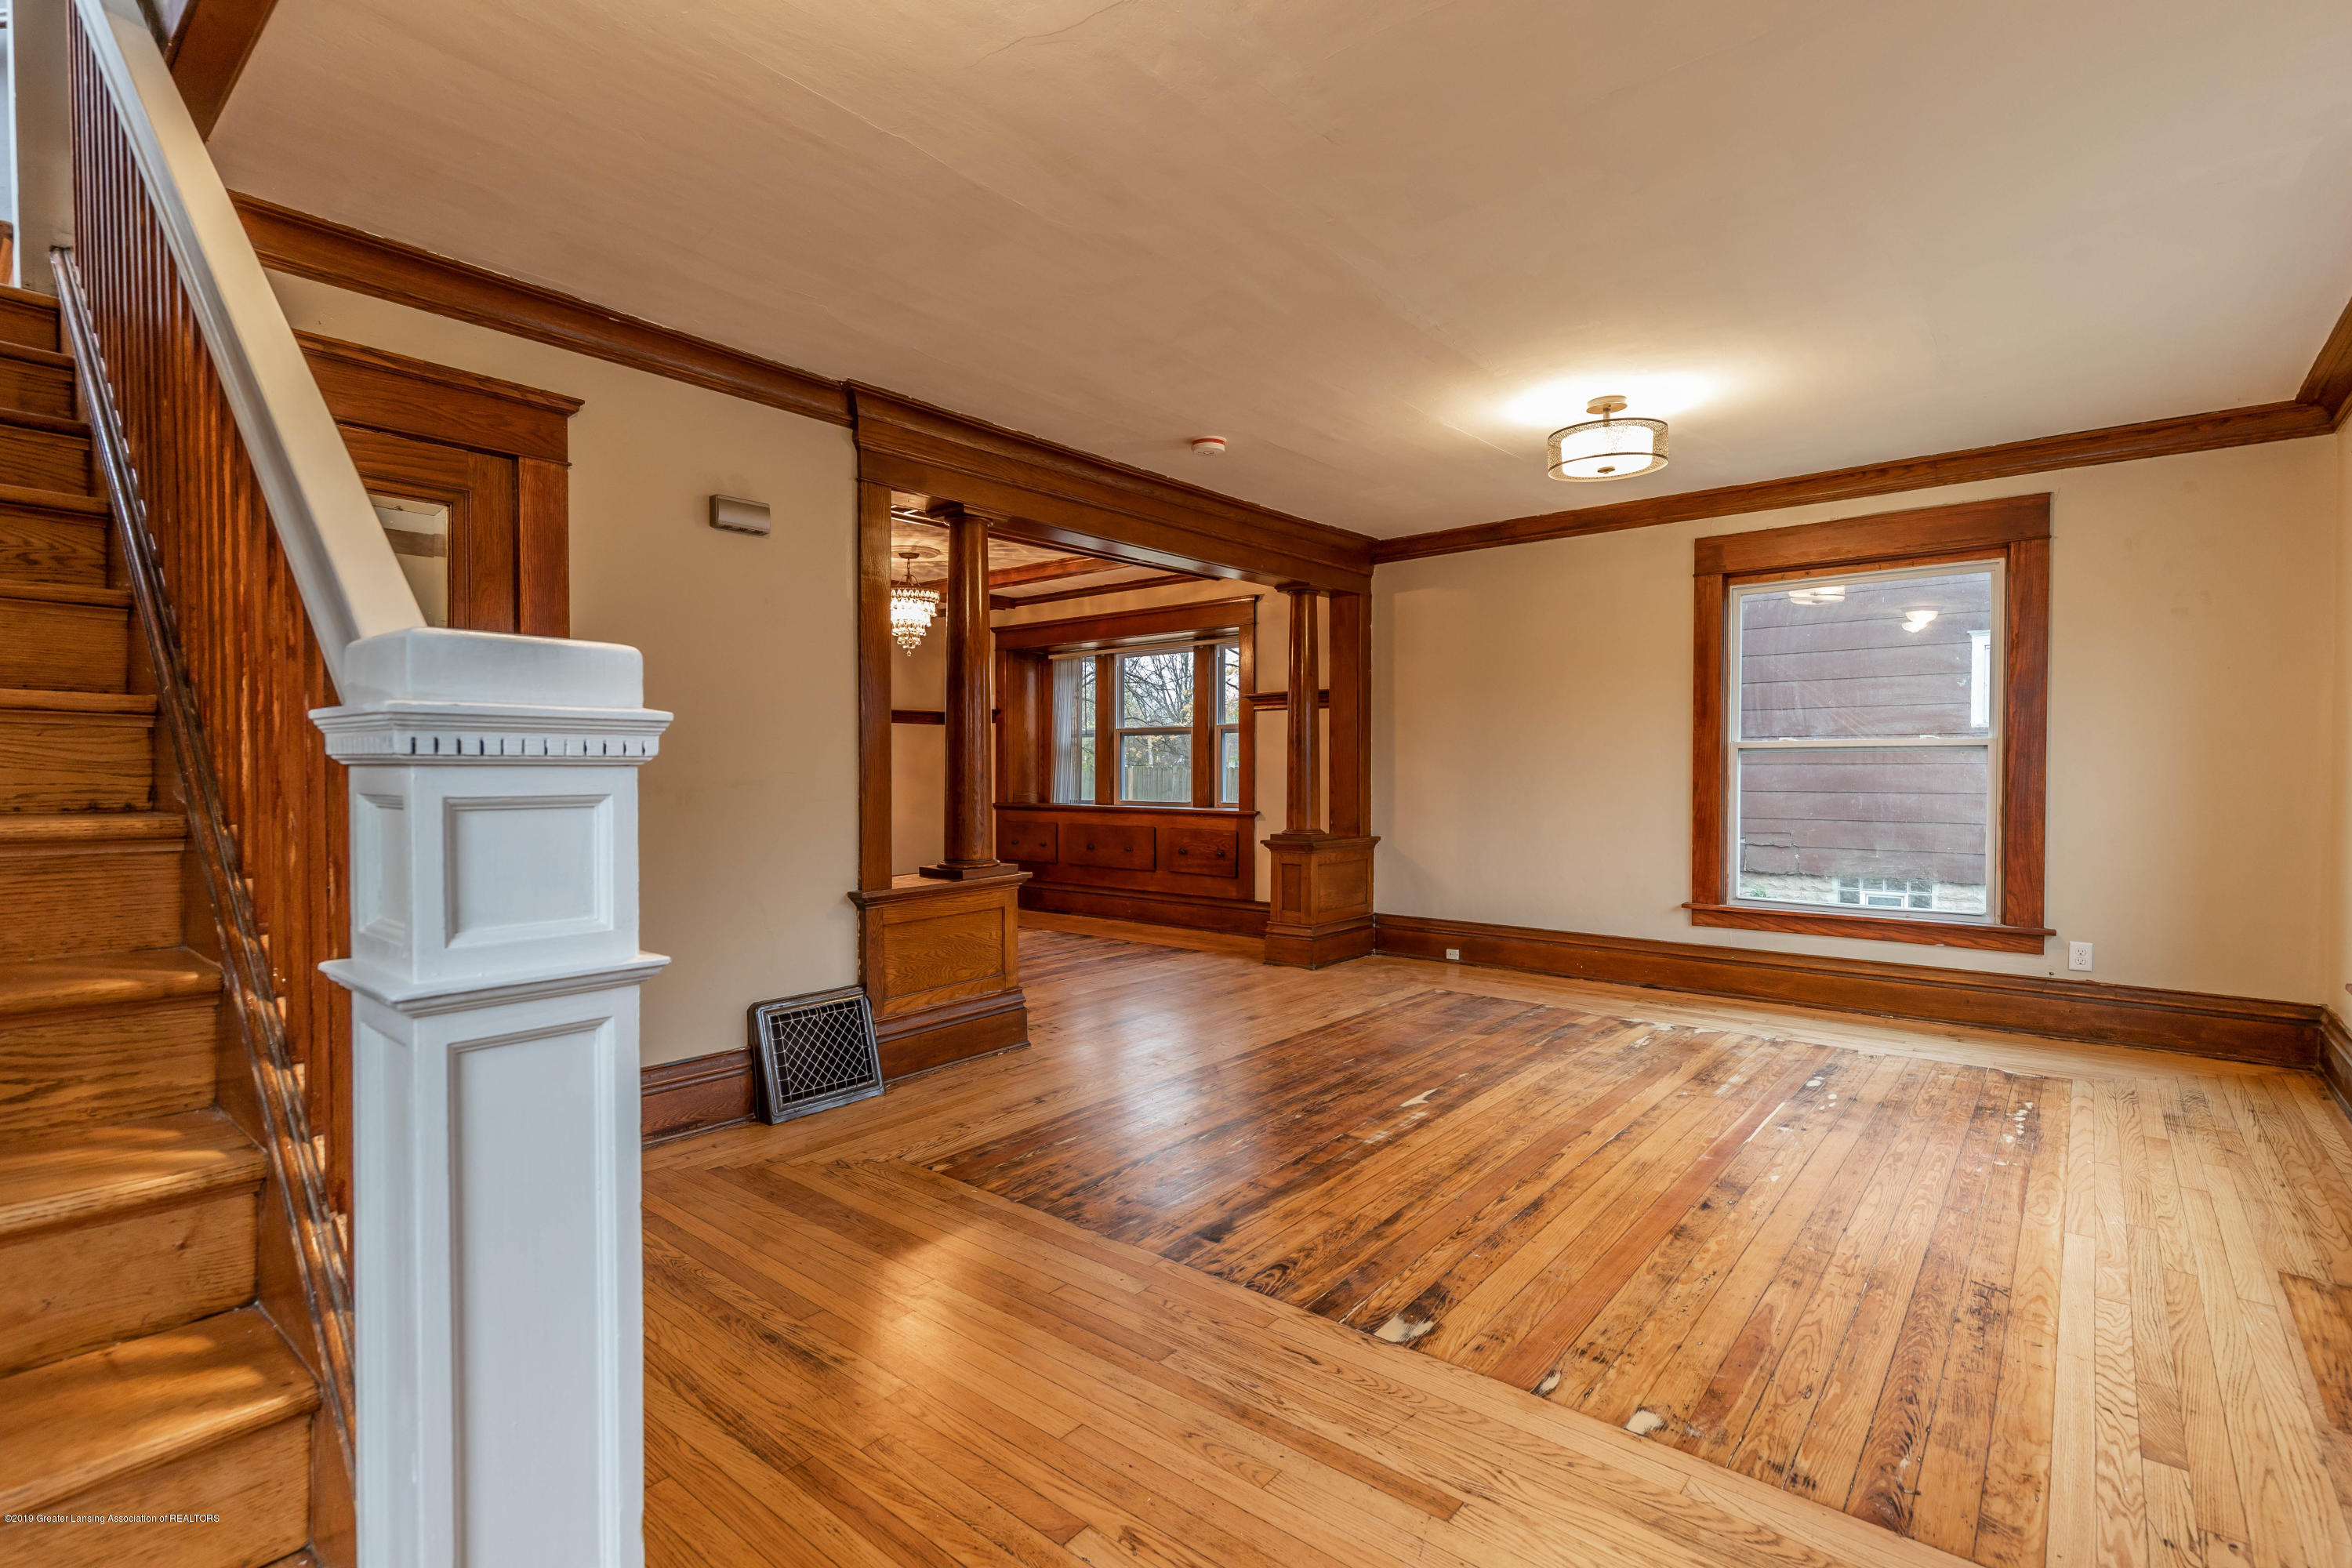 906 N Sycamore St - Living Room - 11